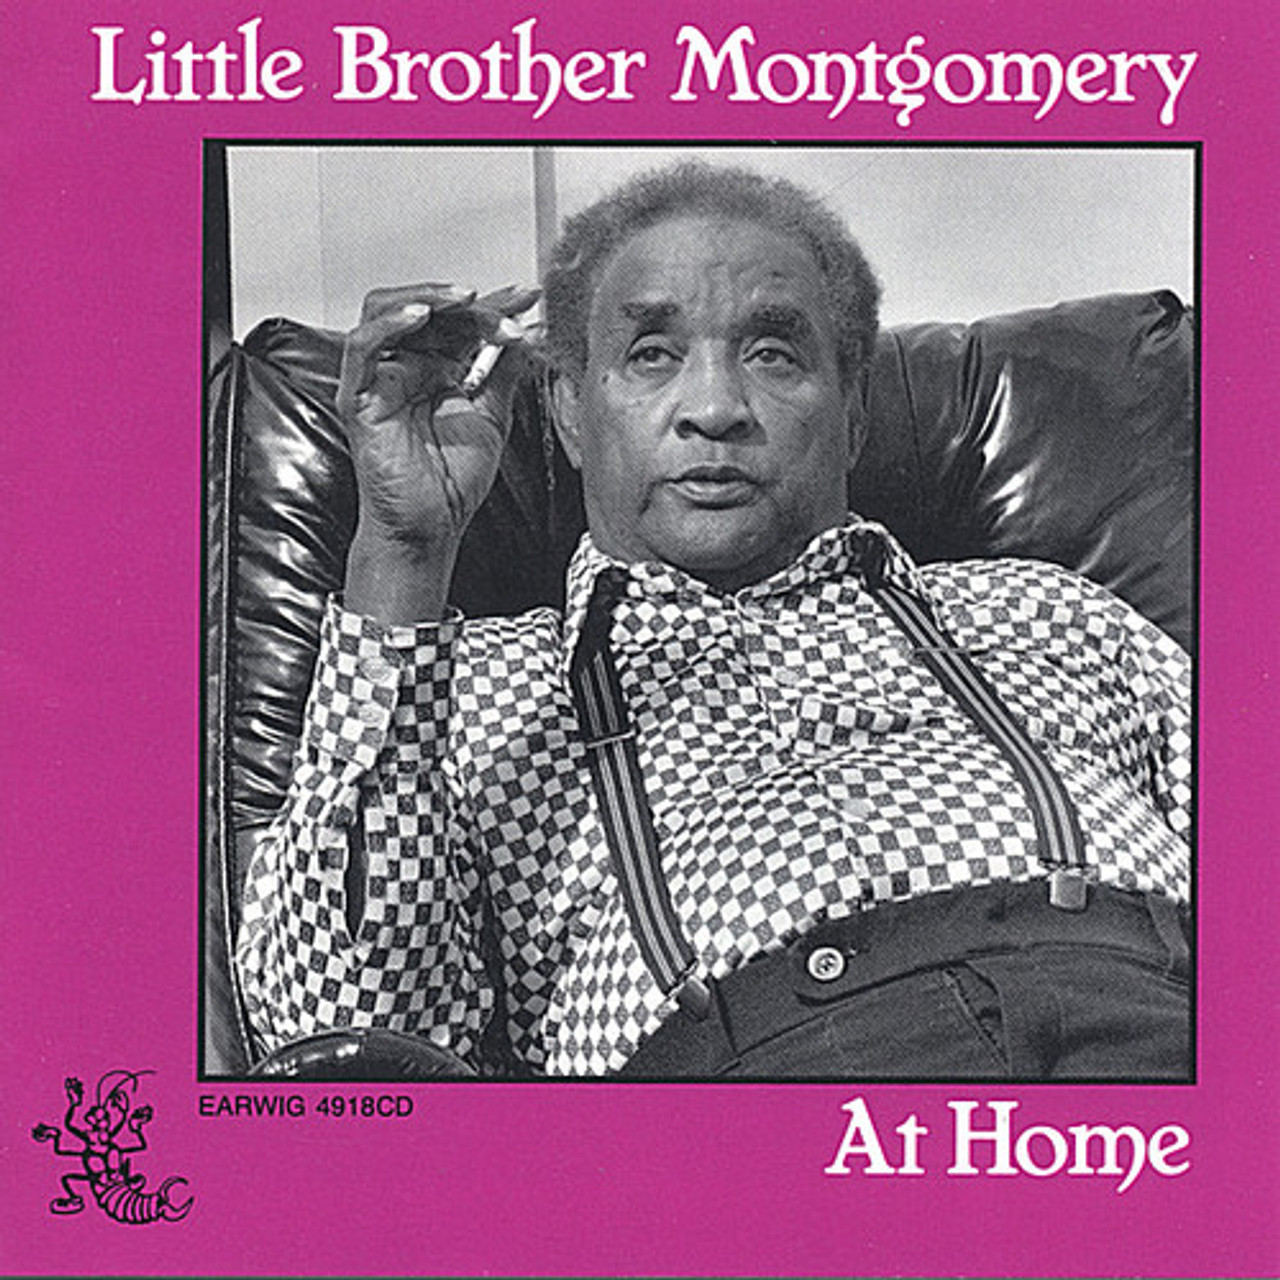 Little Brother Montgomery - At Home